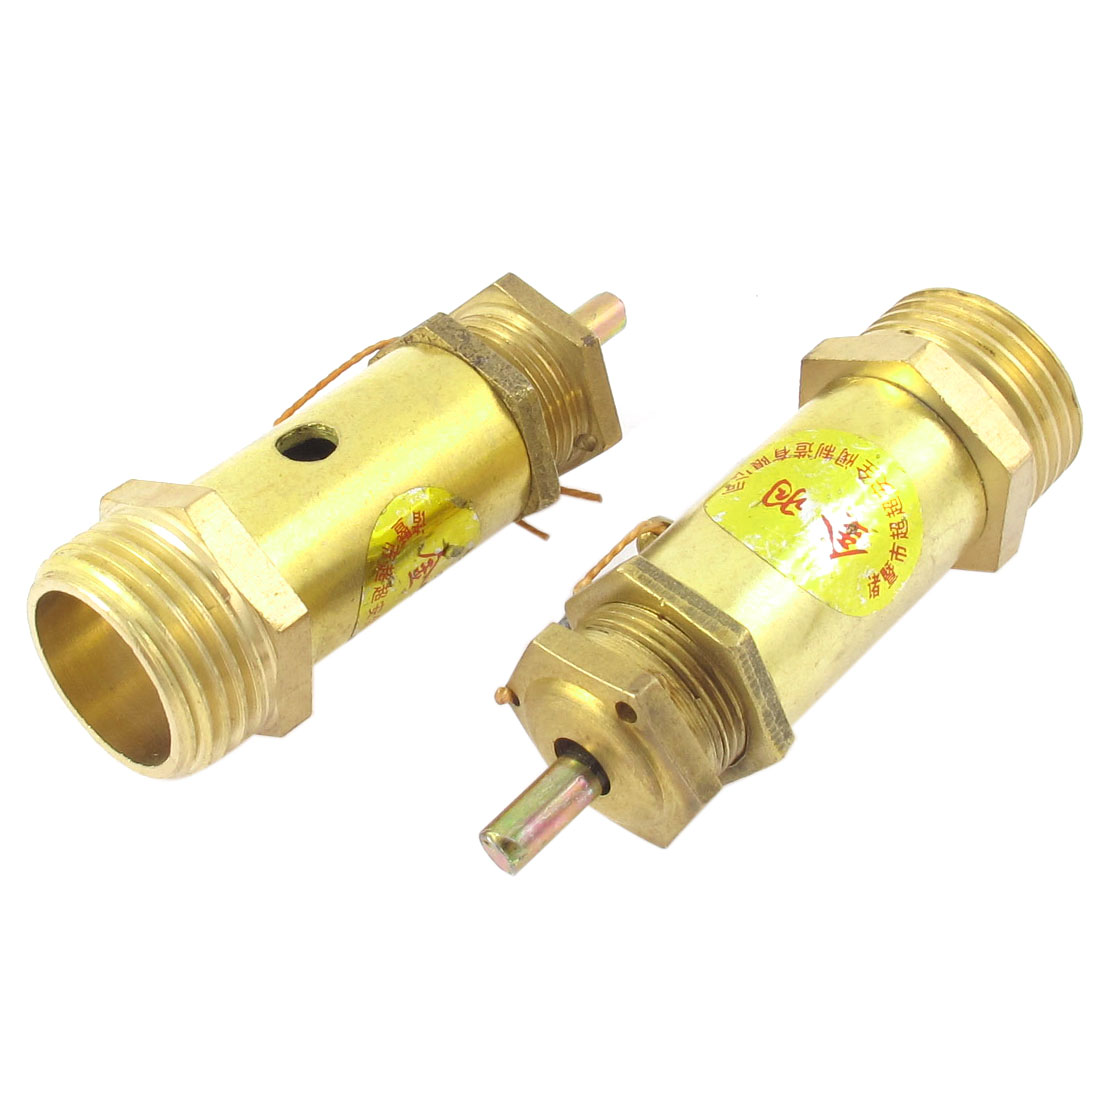 Metal Air Compressor Male Thread Safe Pressure Relief Valve Gold Tone